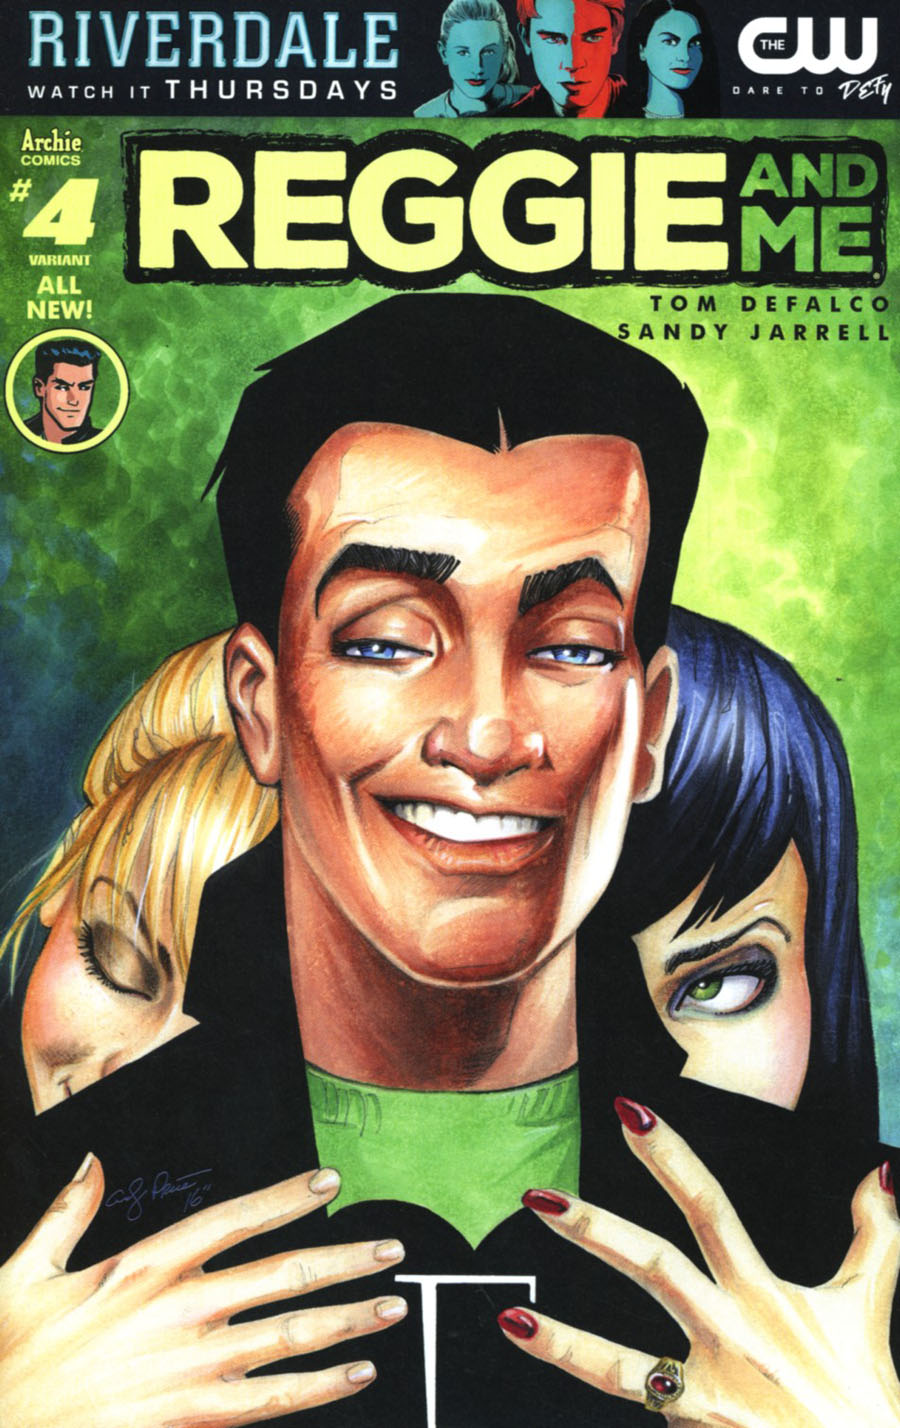 Reggie And Me Vol 2 #4 Cover C Variant Andy Price Cover